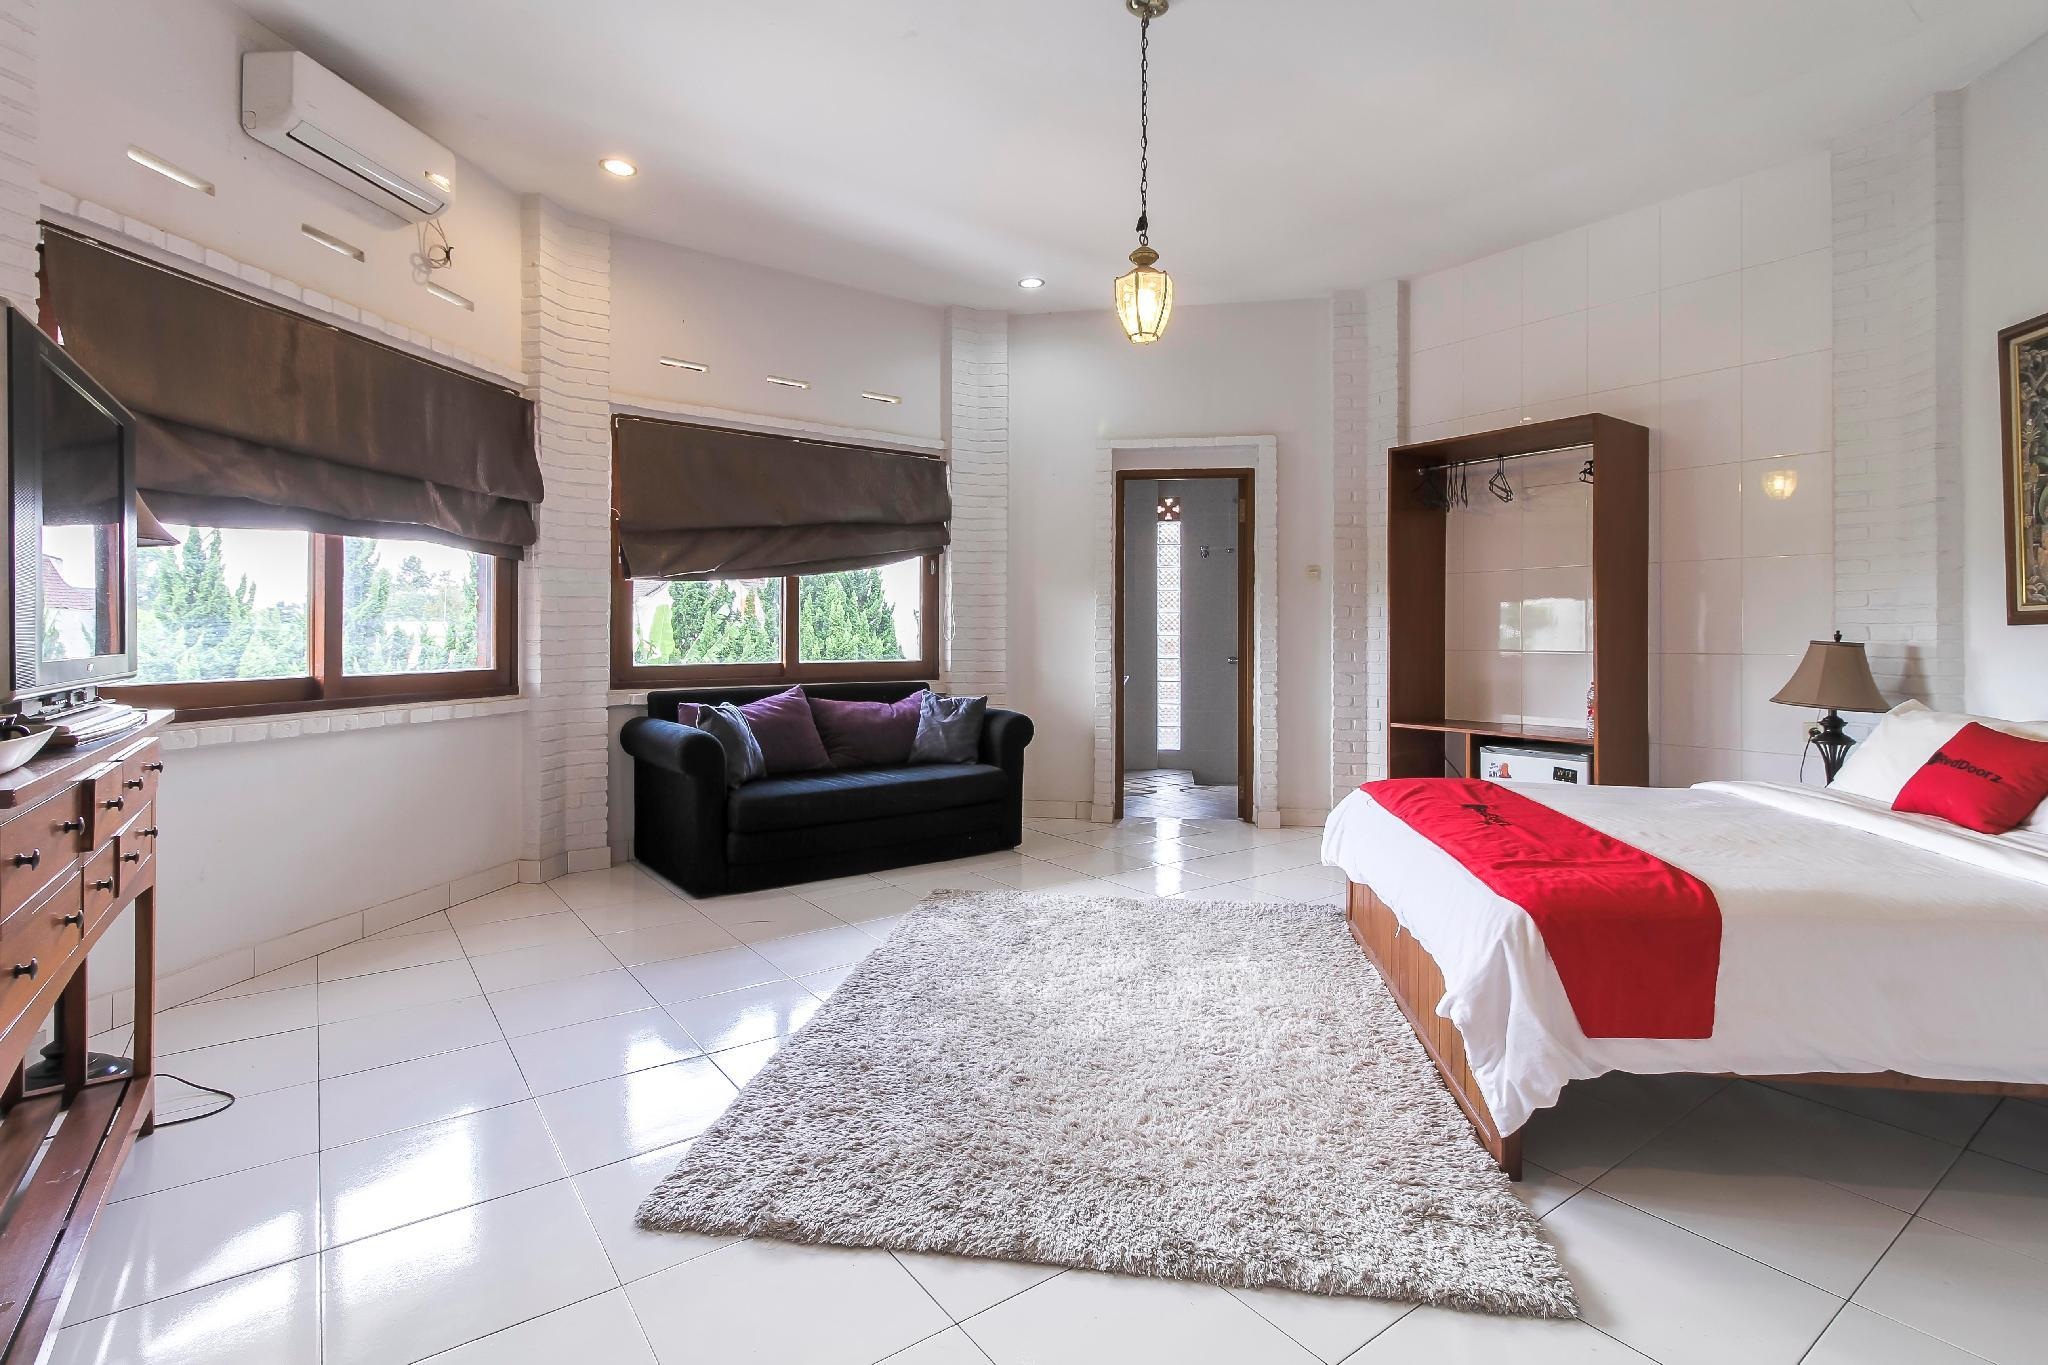 RedDoorz Plus near Dago Pakar